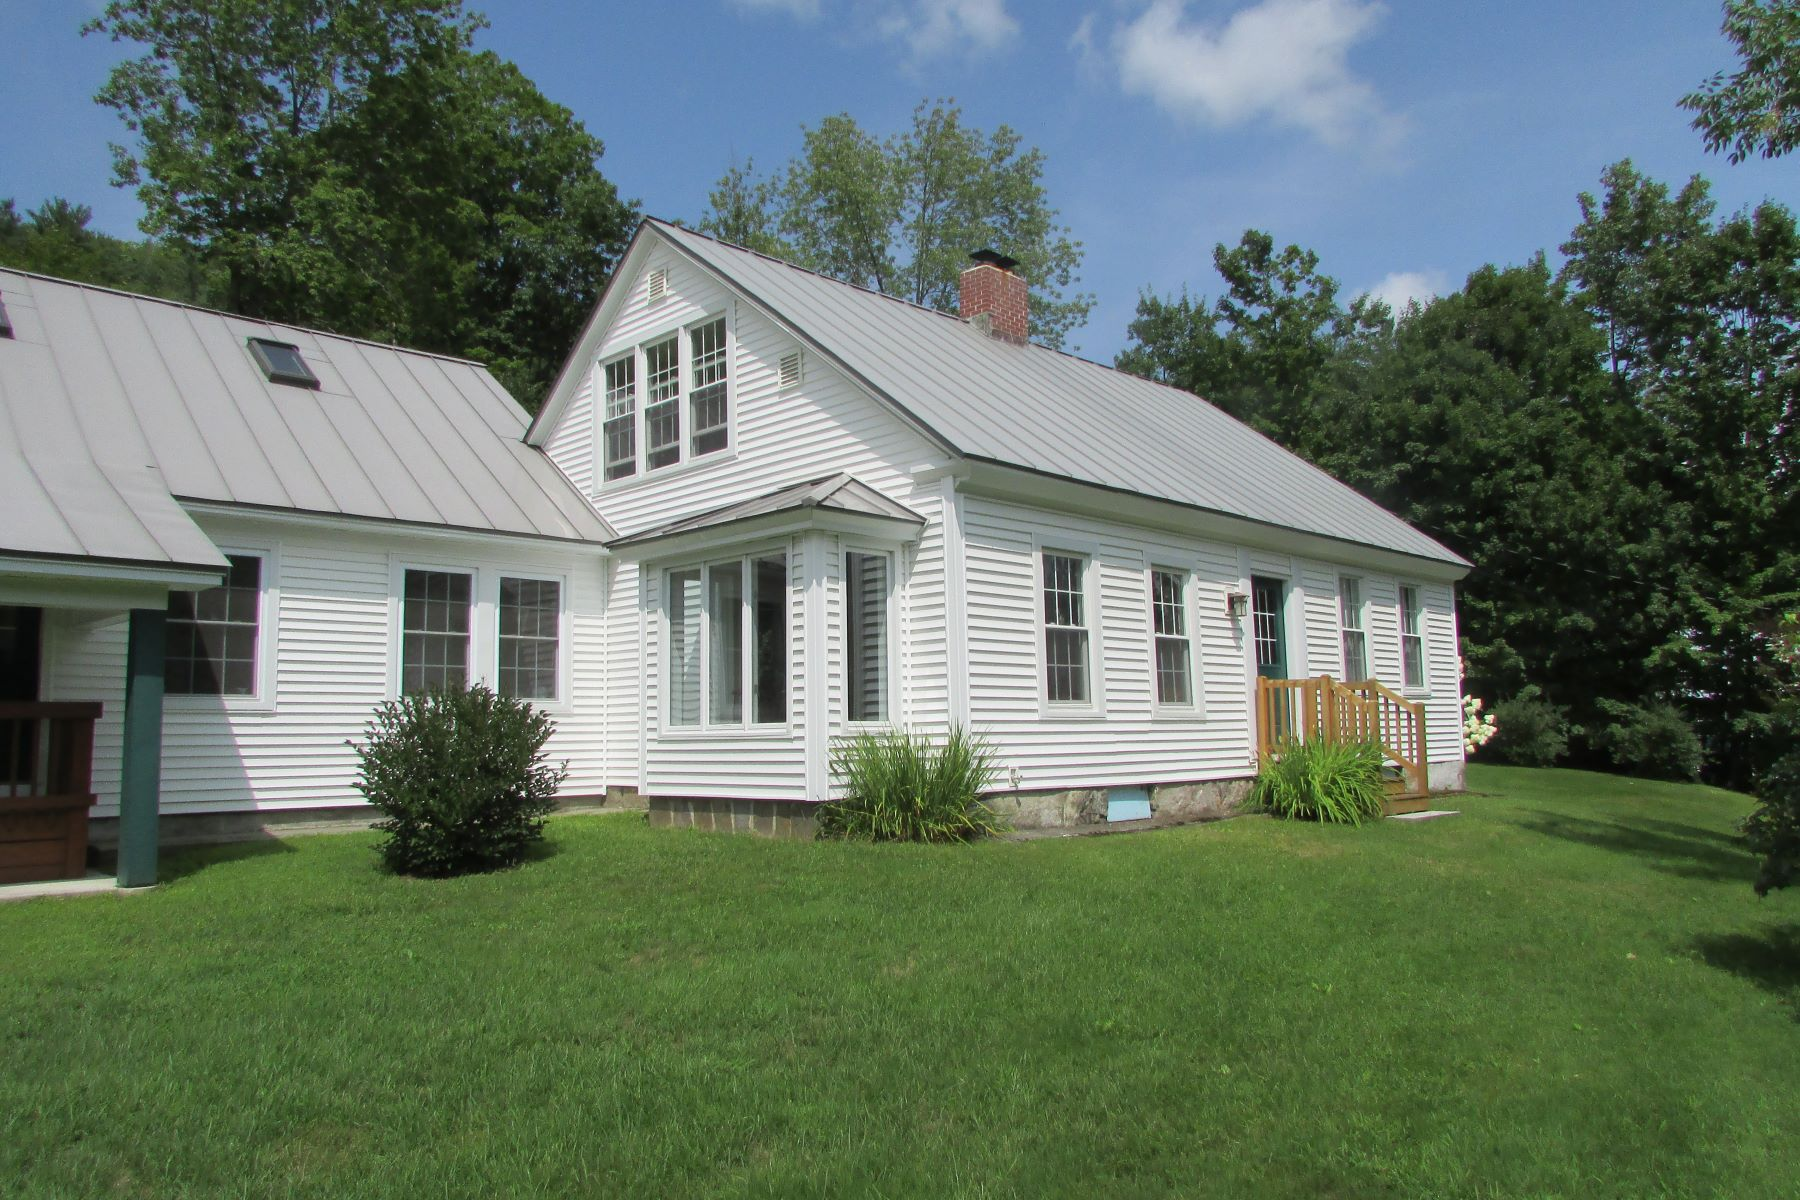 Single Family Home for Sale at Three Bedroom Cape in Cornish on 4.5 Acres 528 Townhouse Rd Cornish, New Hampshire 03745 United States